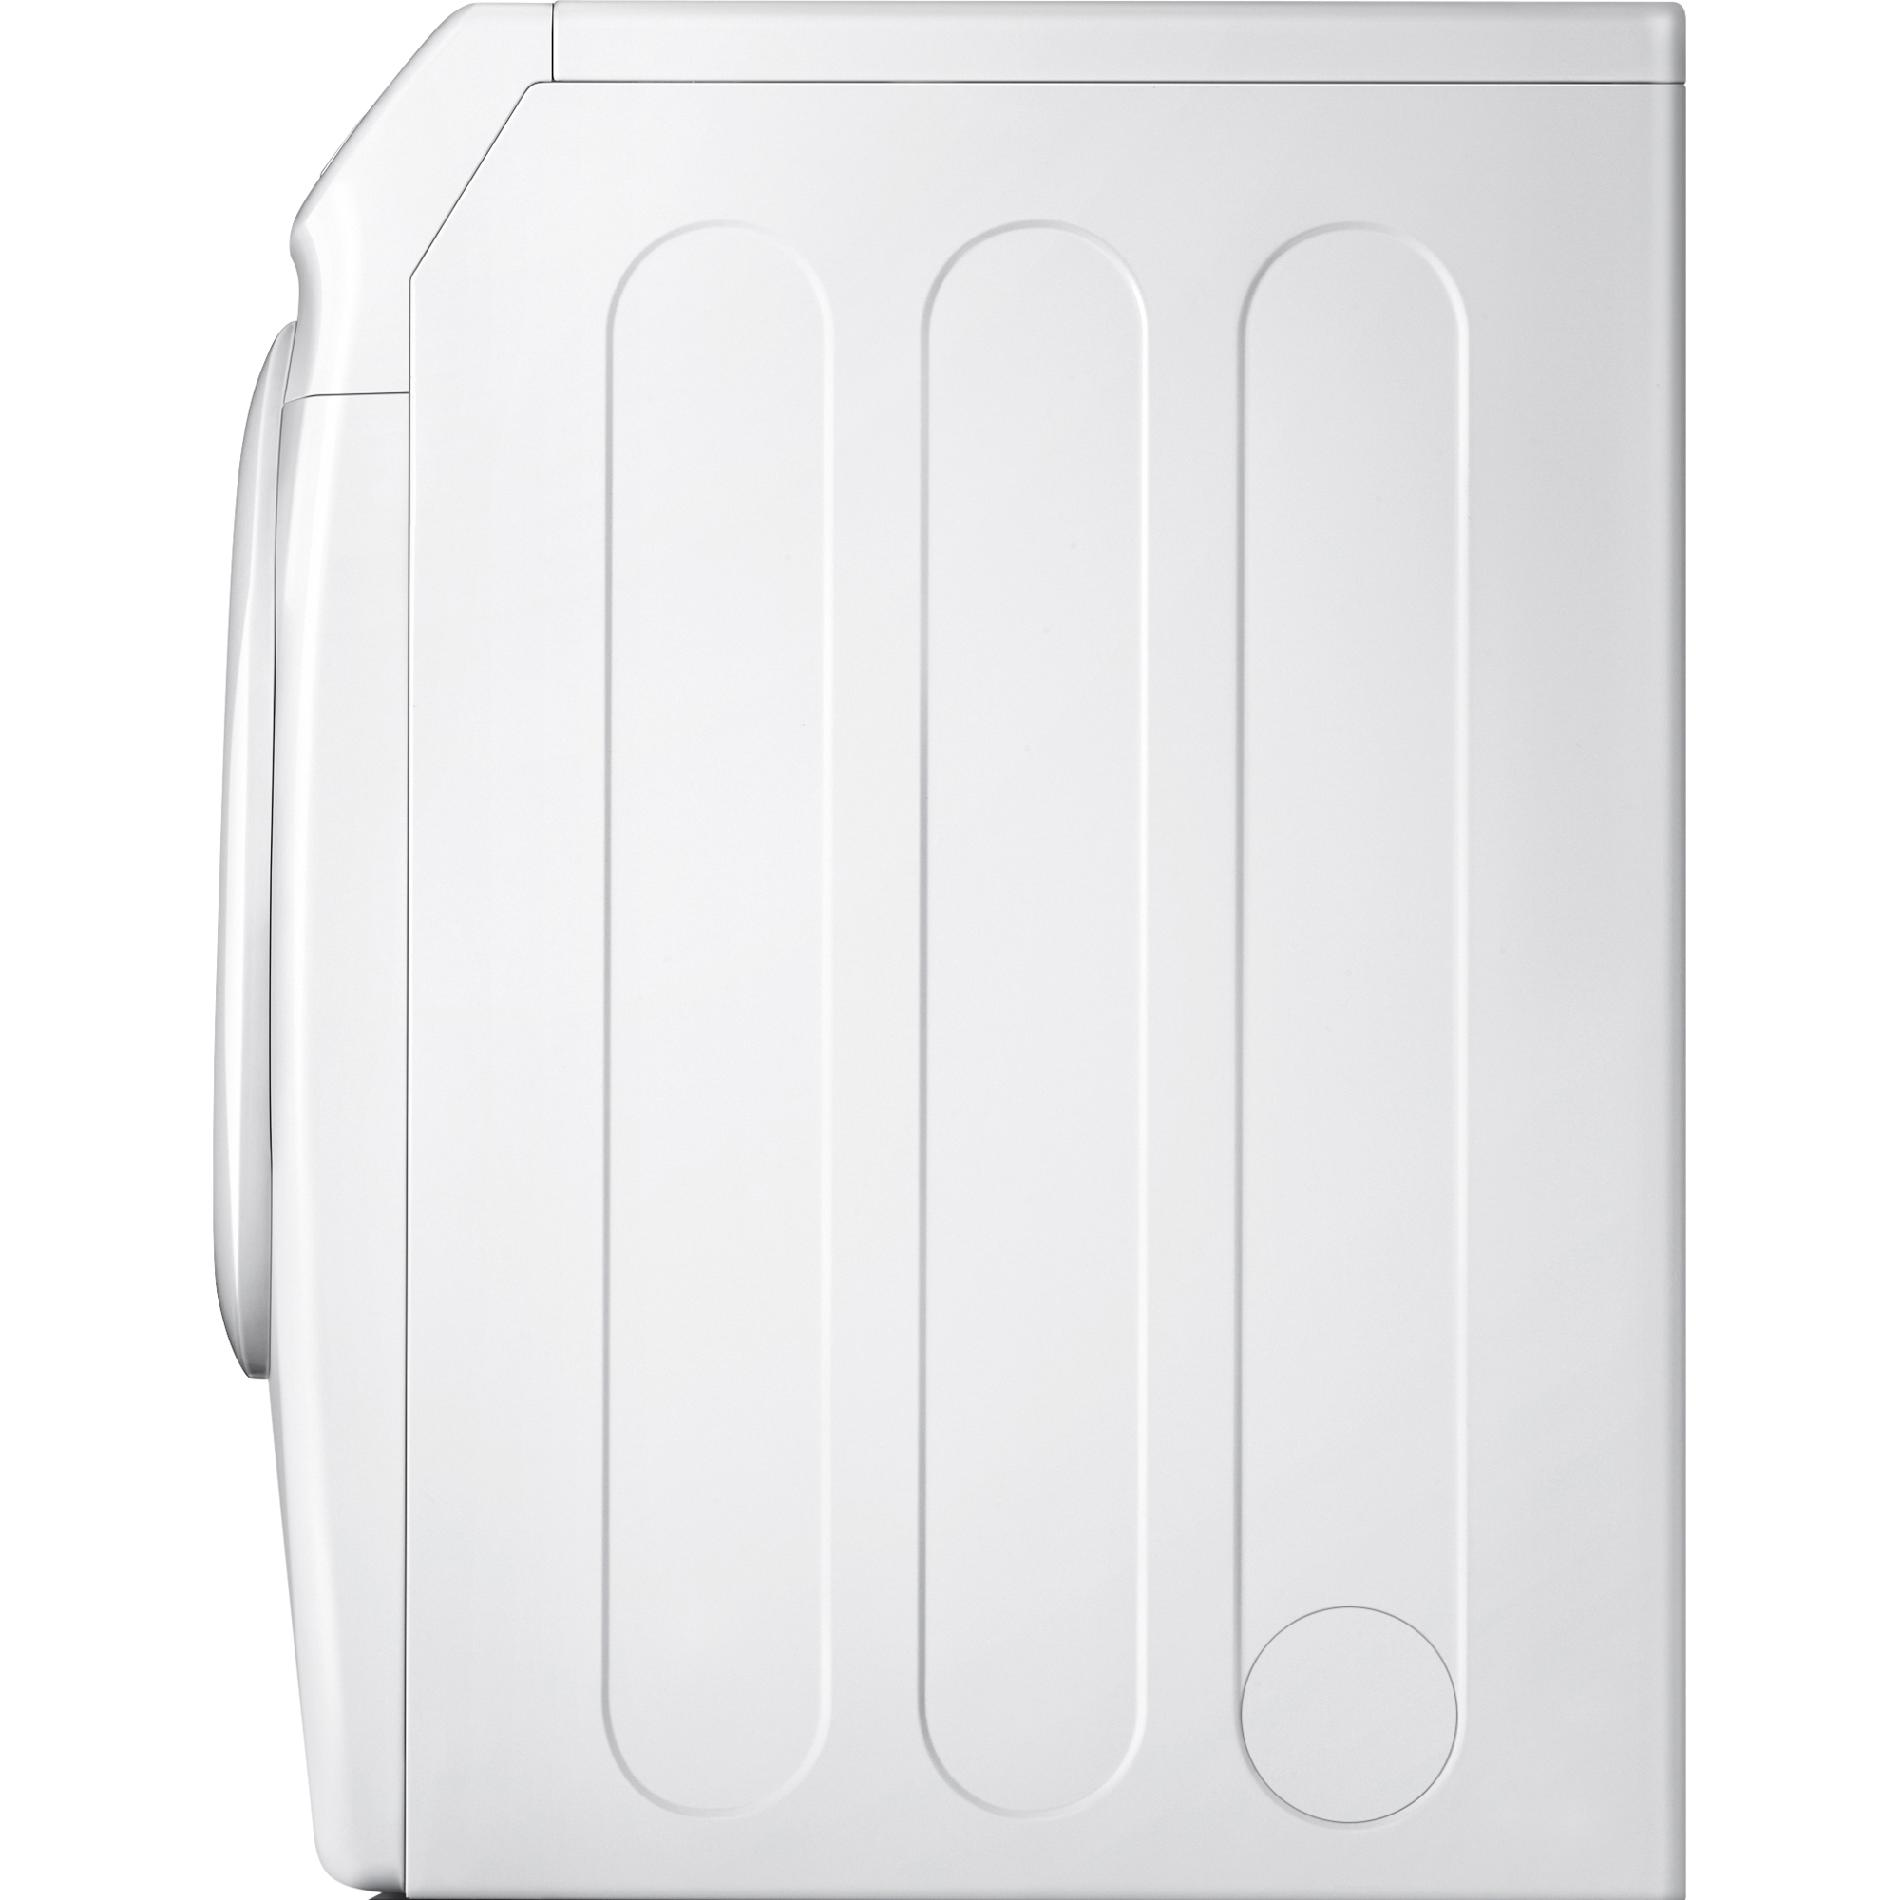 Samsung 7.5 cu. ft. Front-Load Electric Dryer - White